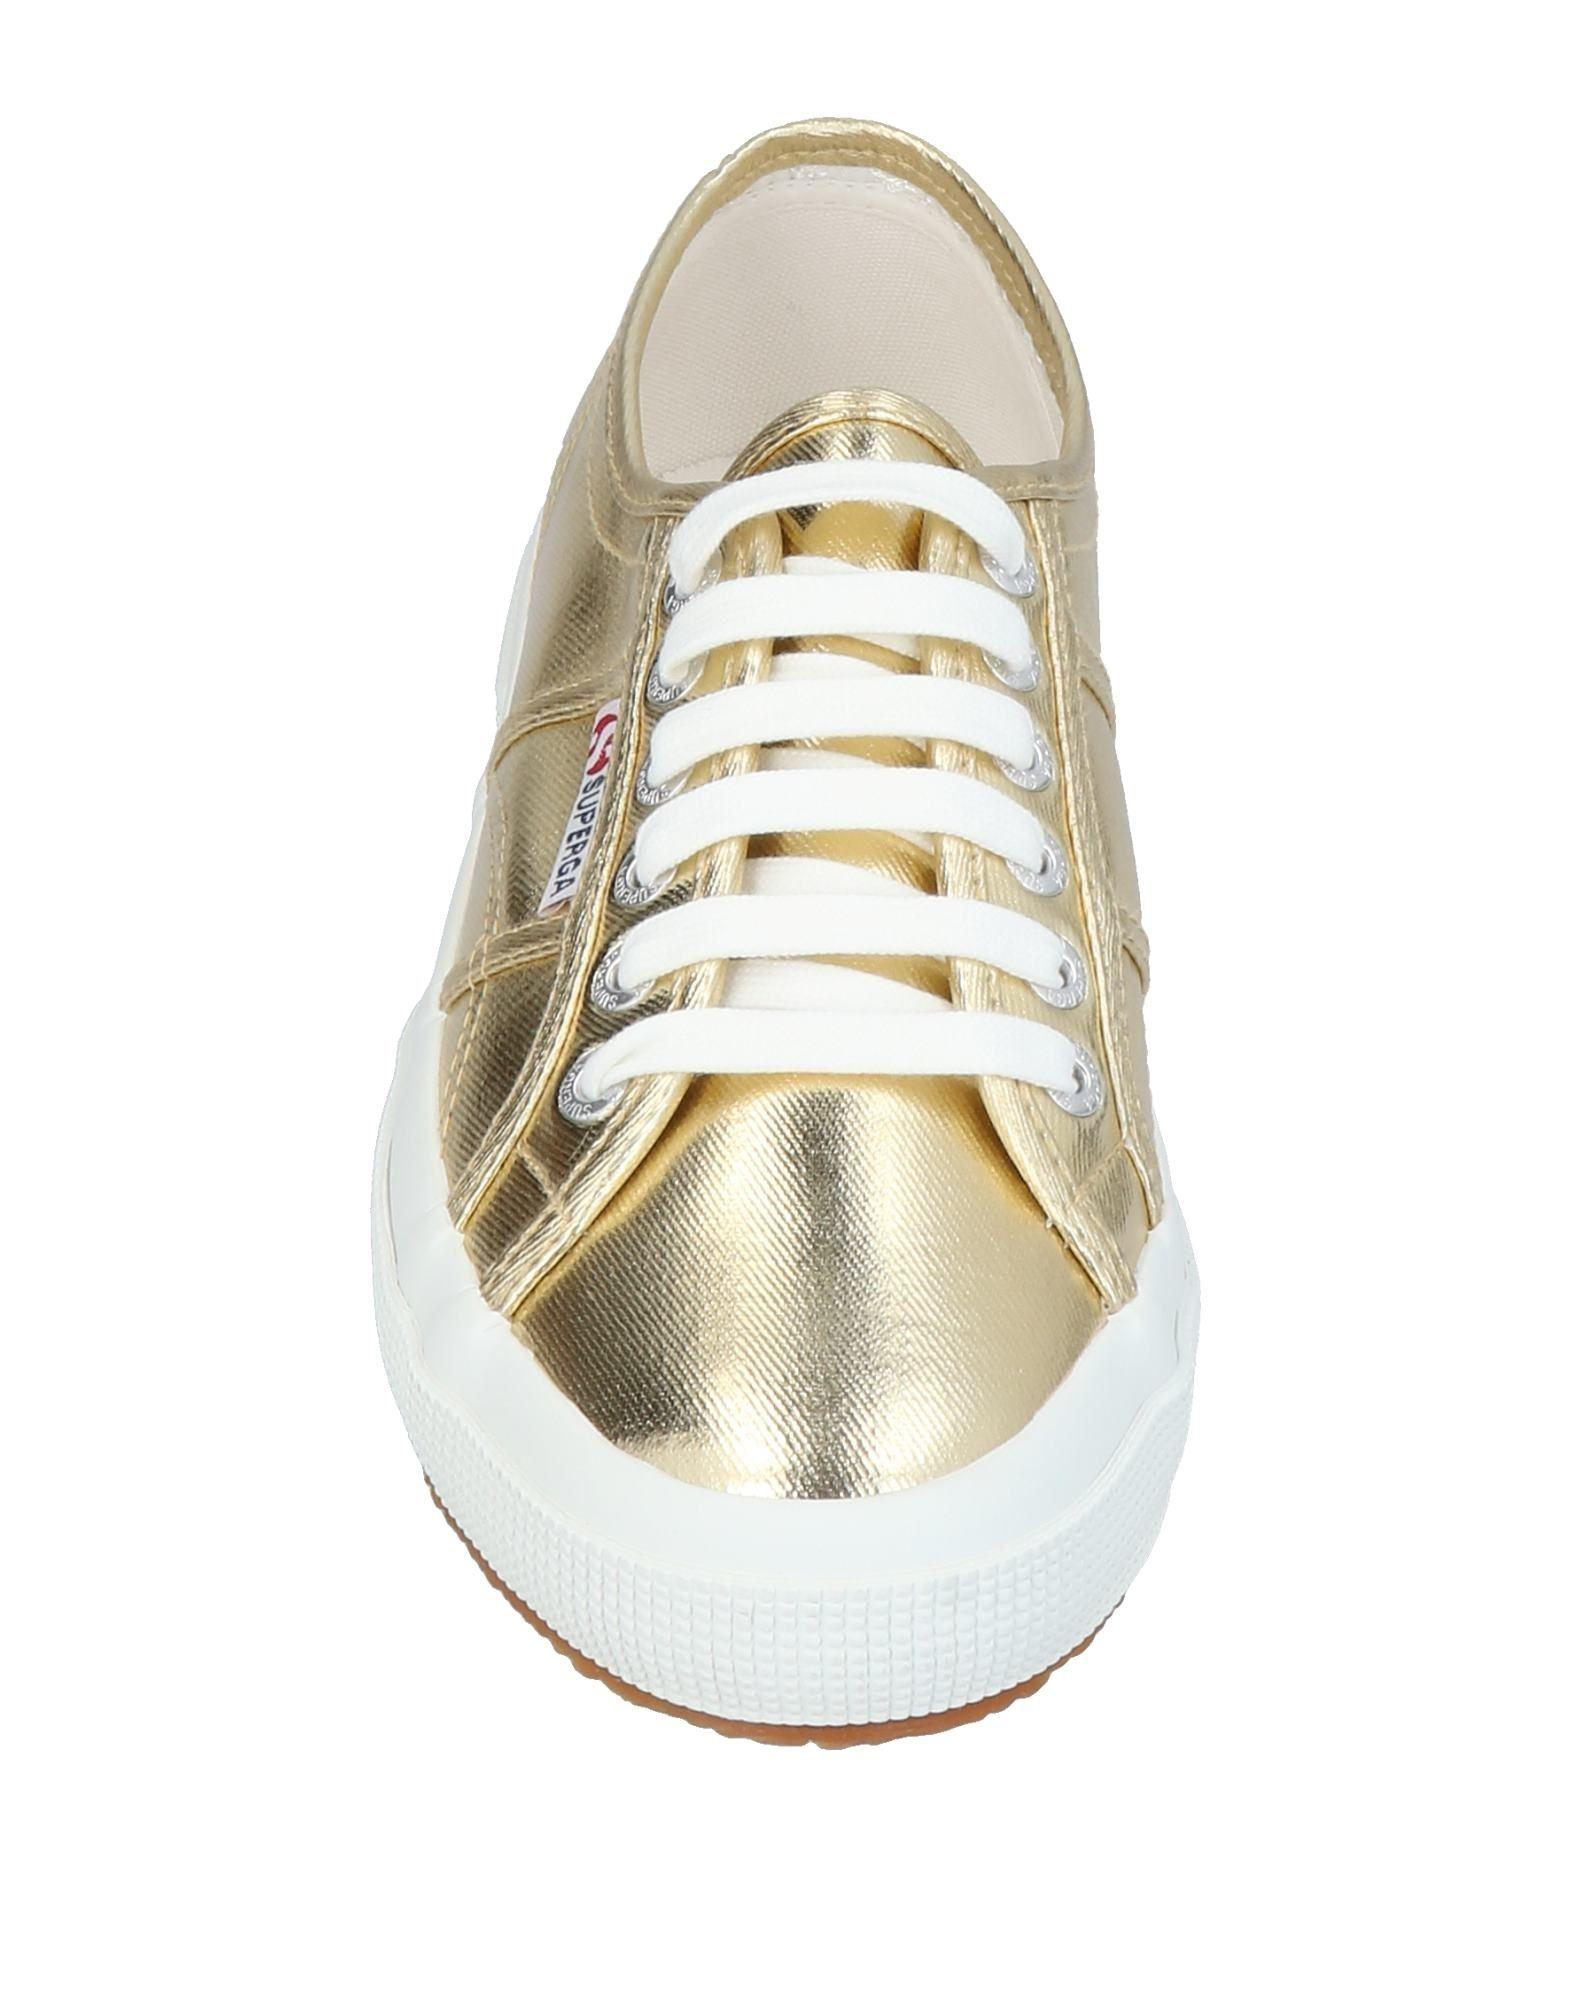 Superga Rubber Low-tops & Sneakers in Gold (Metallic)